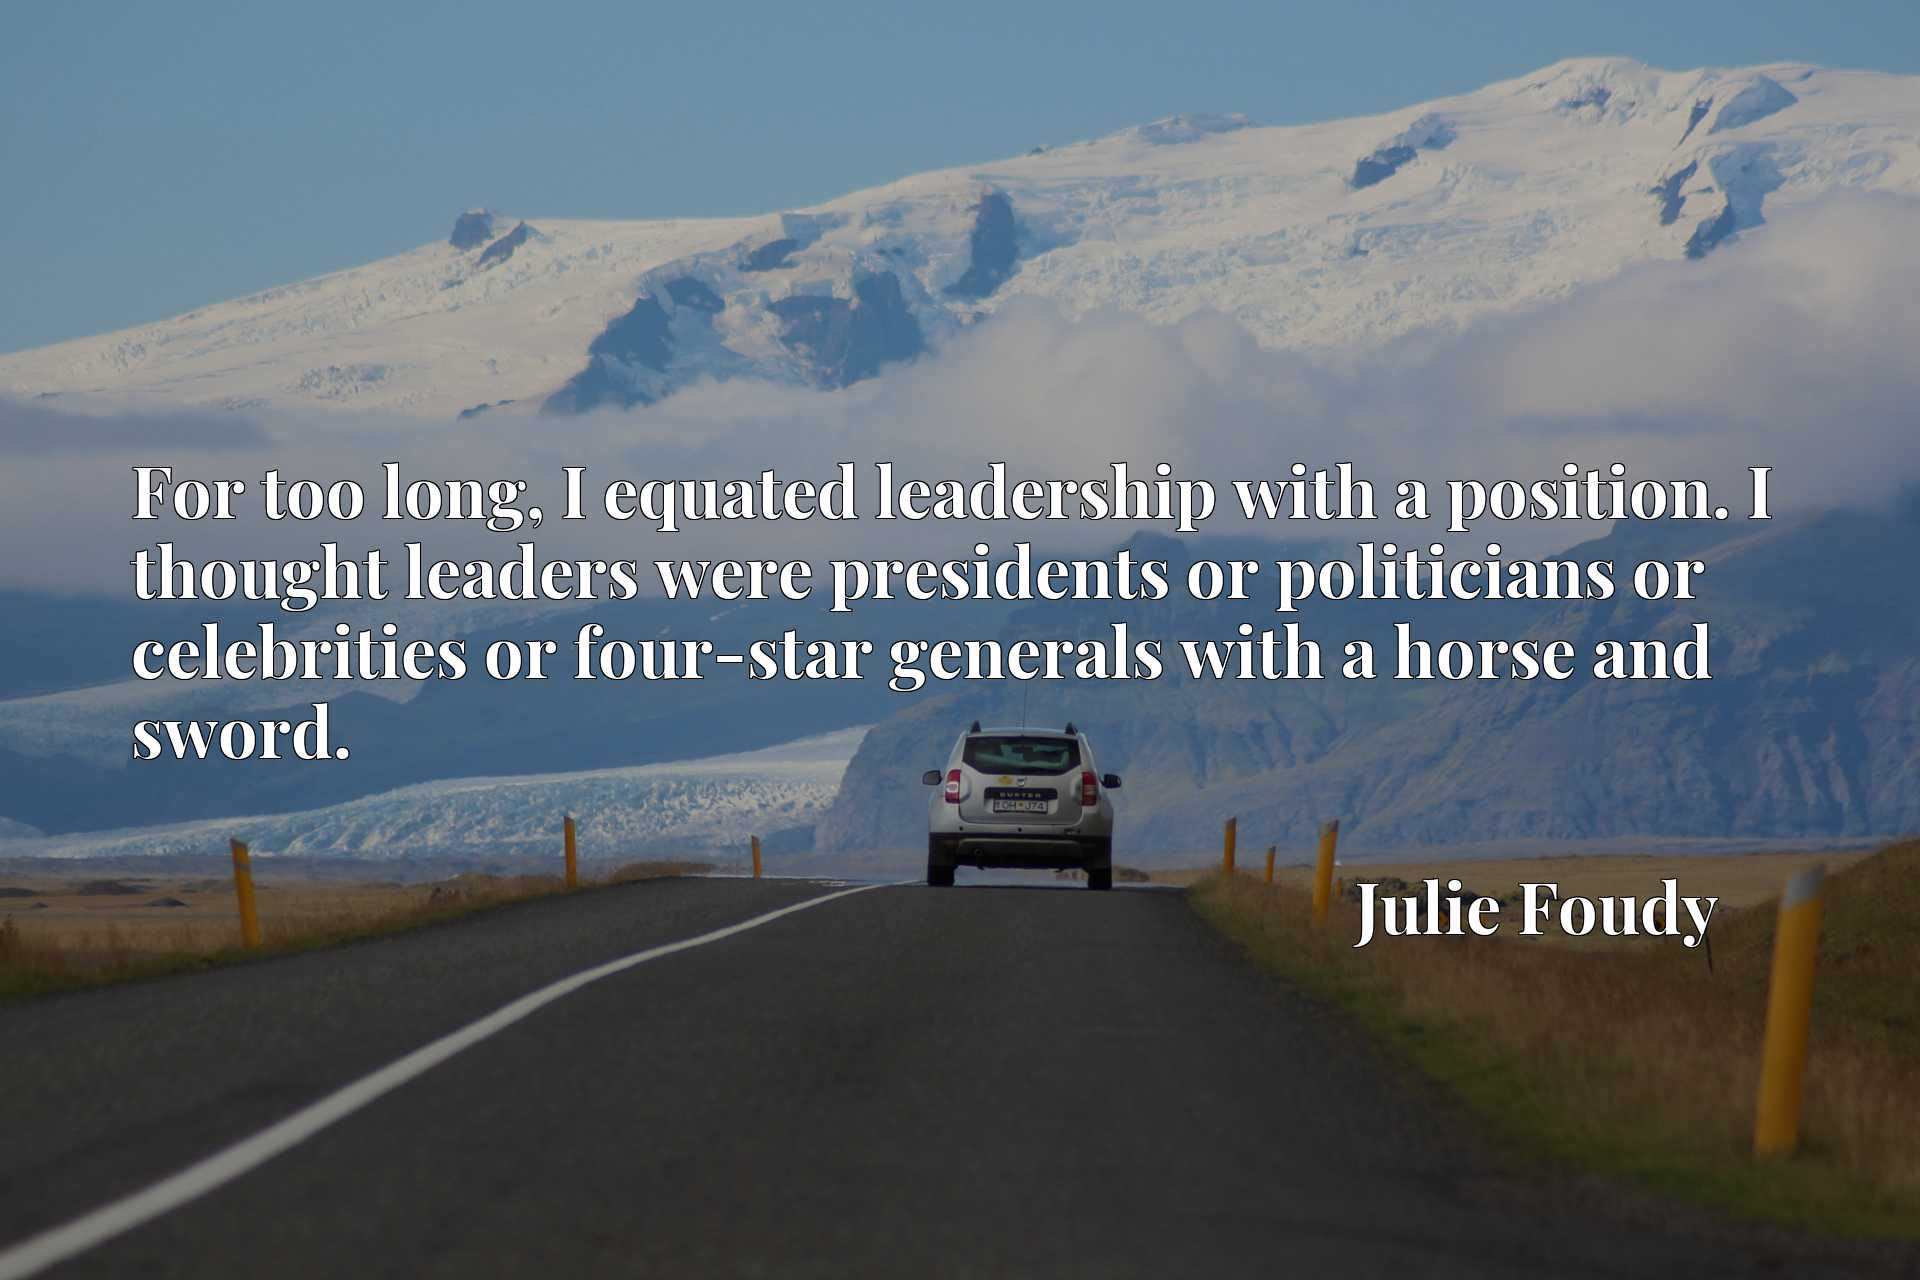 For too long, I equated leadership with a position. I thought leaders were presidents or politicians or celebrities or four-star generals with a horse and sword.